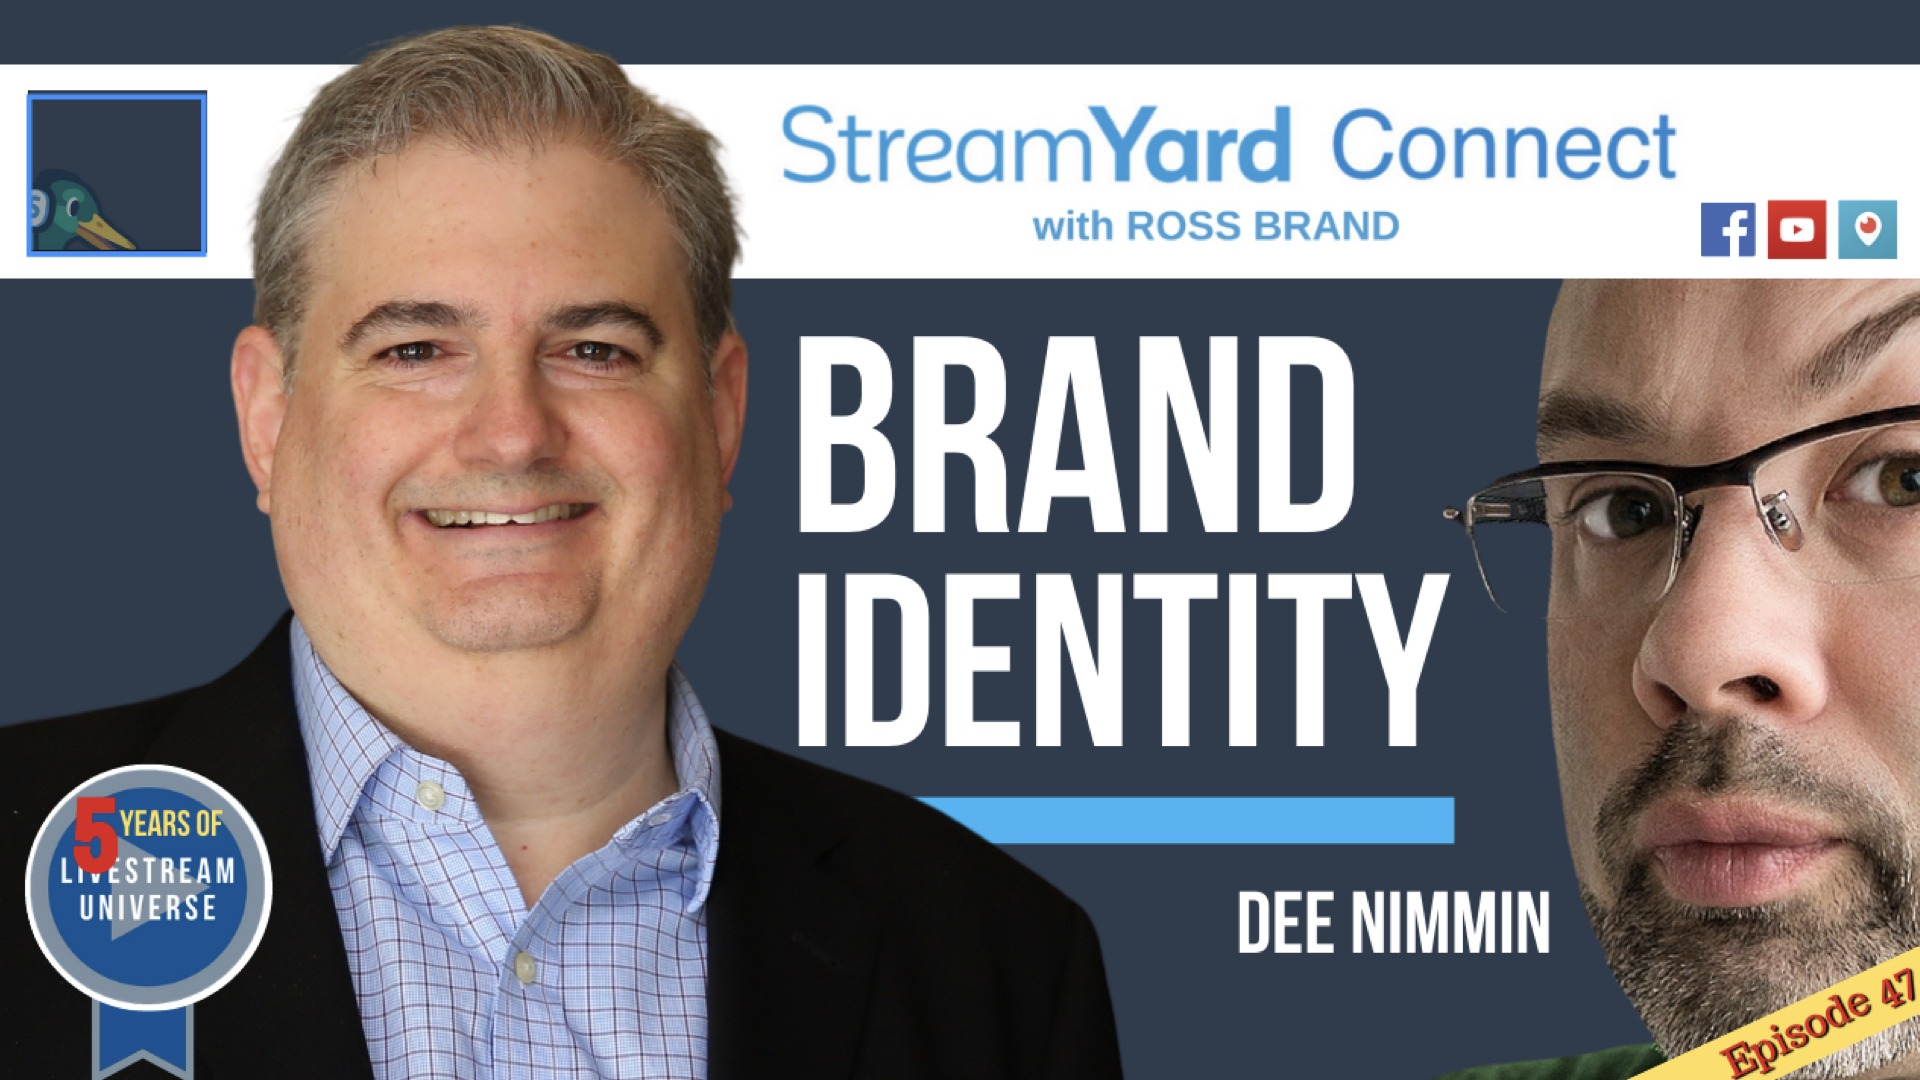 StreamYard Connect Ross Brand Dee Nimmin